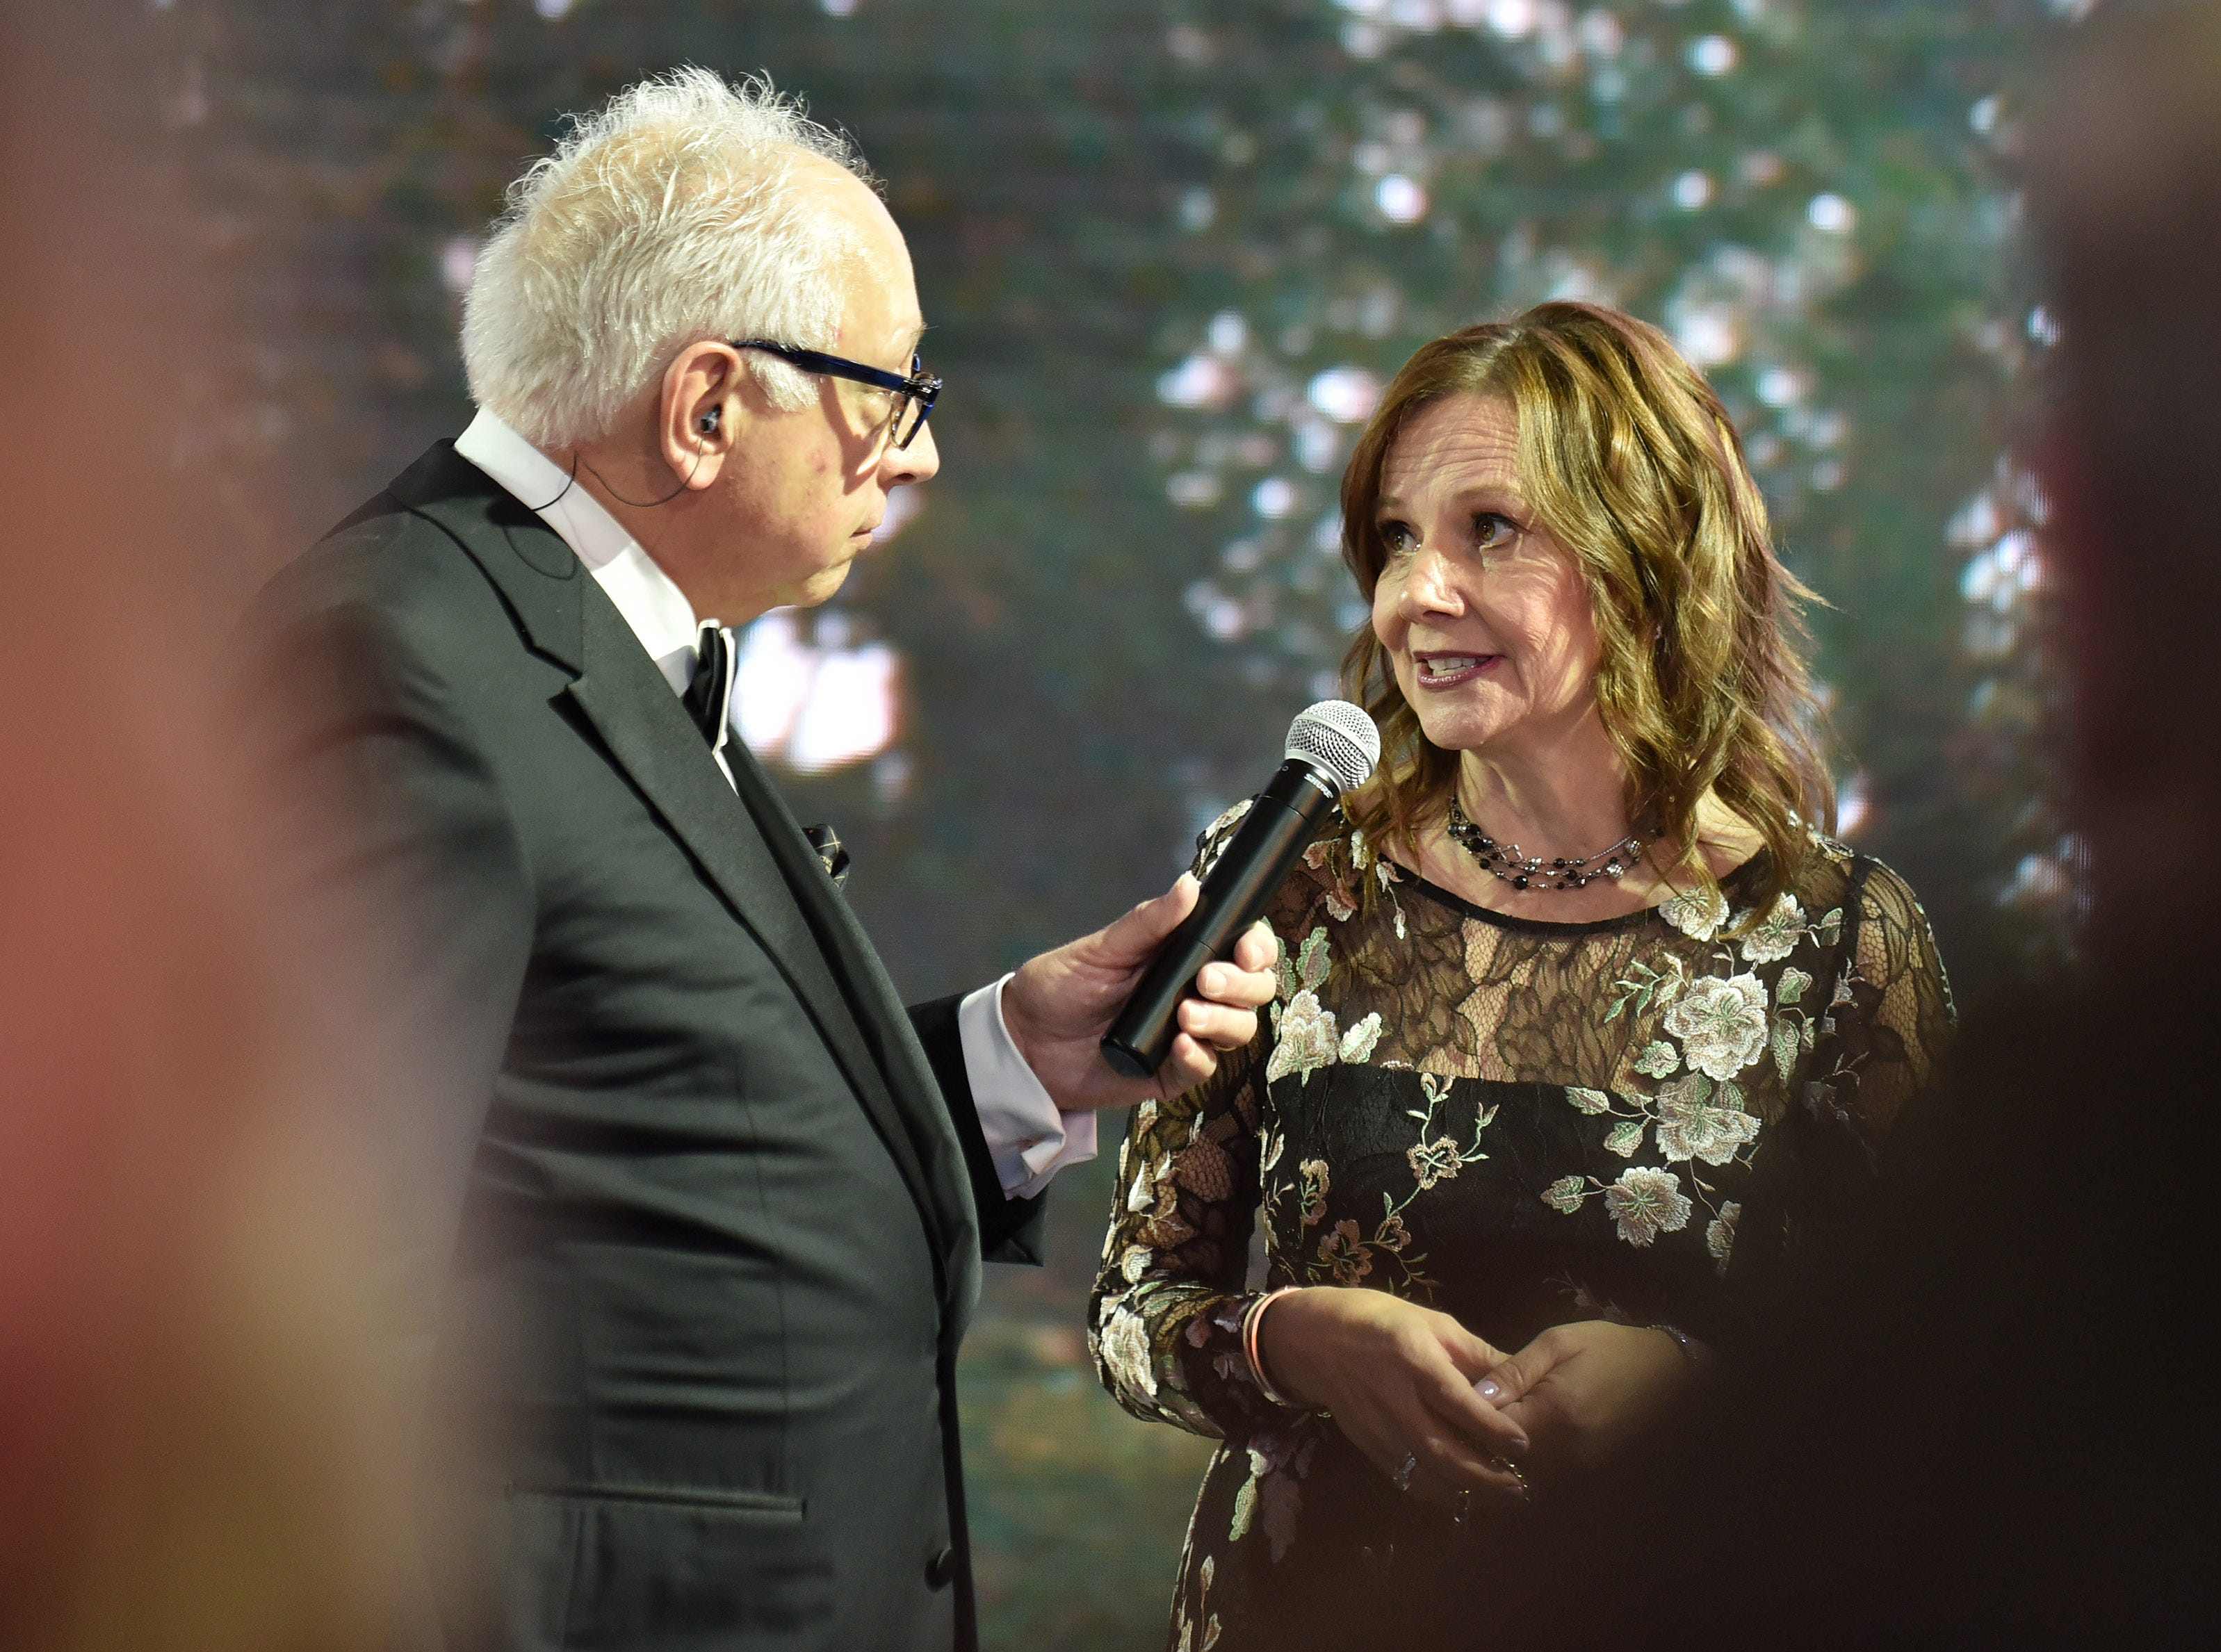 Radio talk show host Paul W. Smith of WJR interviews GM Chairwoman and CEO Mary Barra at the Charity Preview.